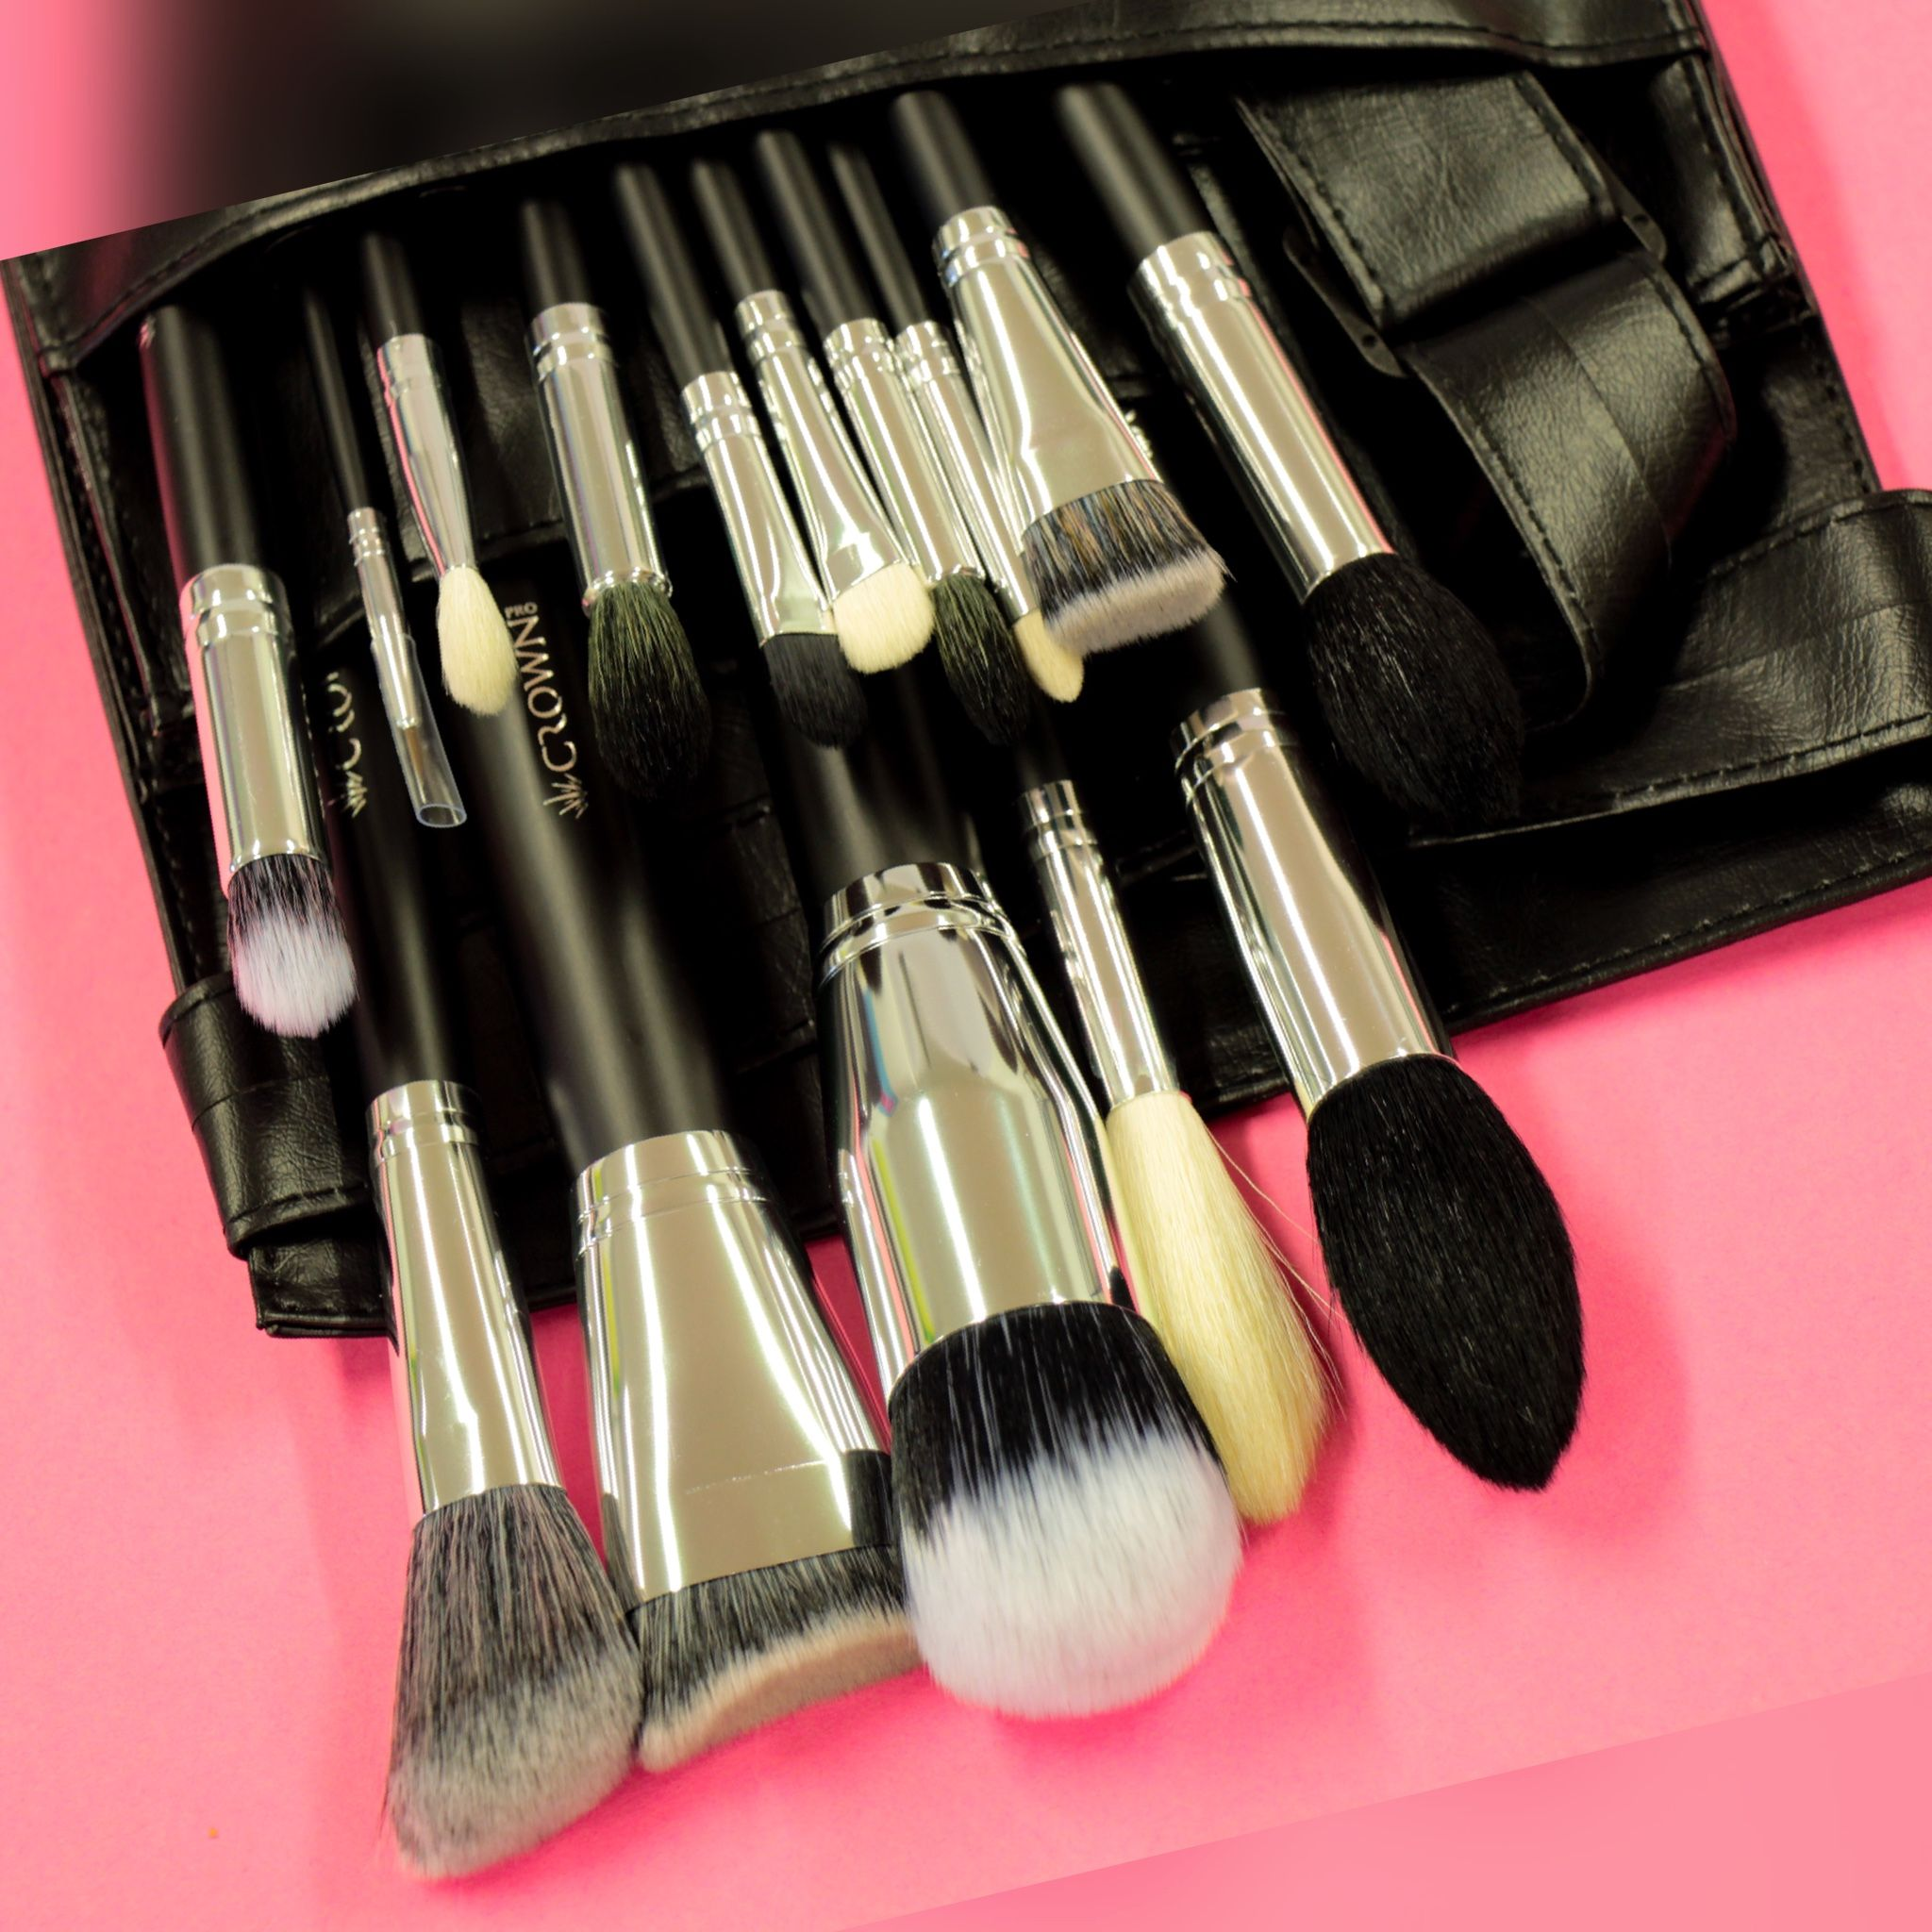 901 15 pc Crown Pro Brush Set Makeup brush set, Crown